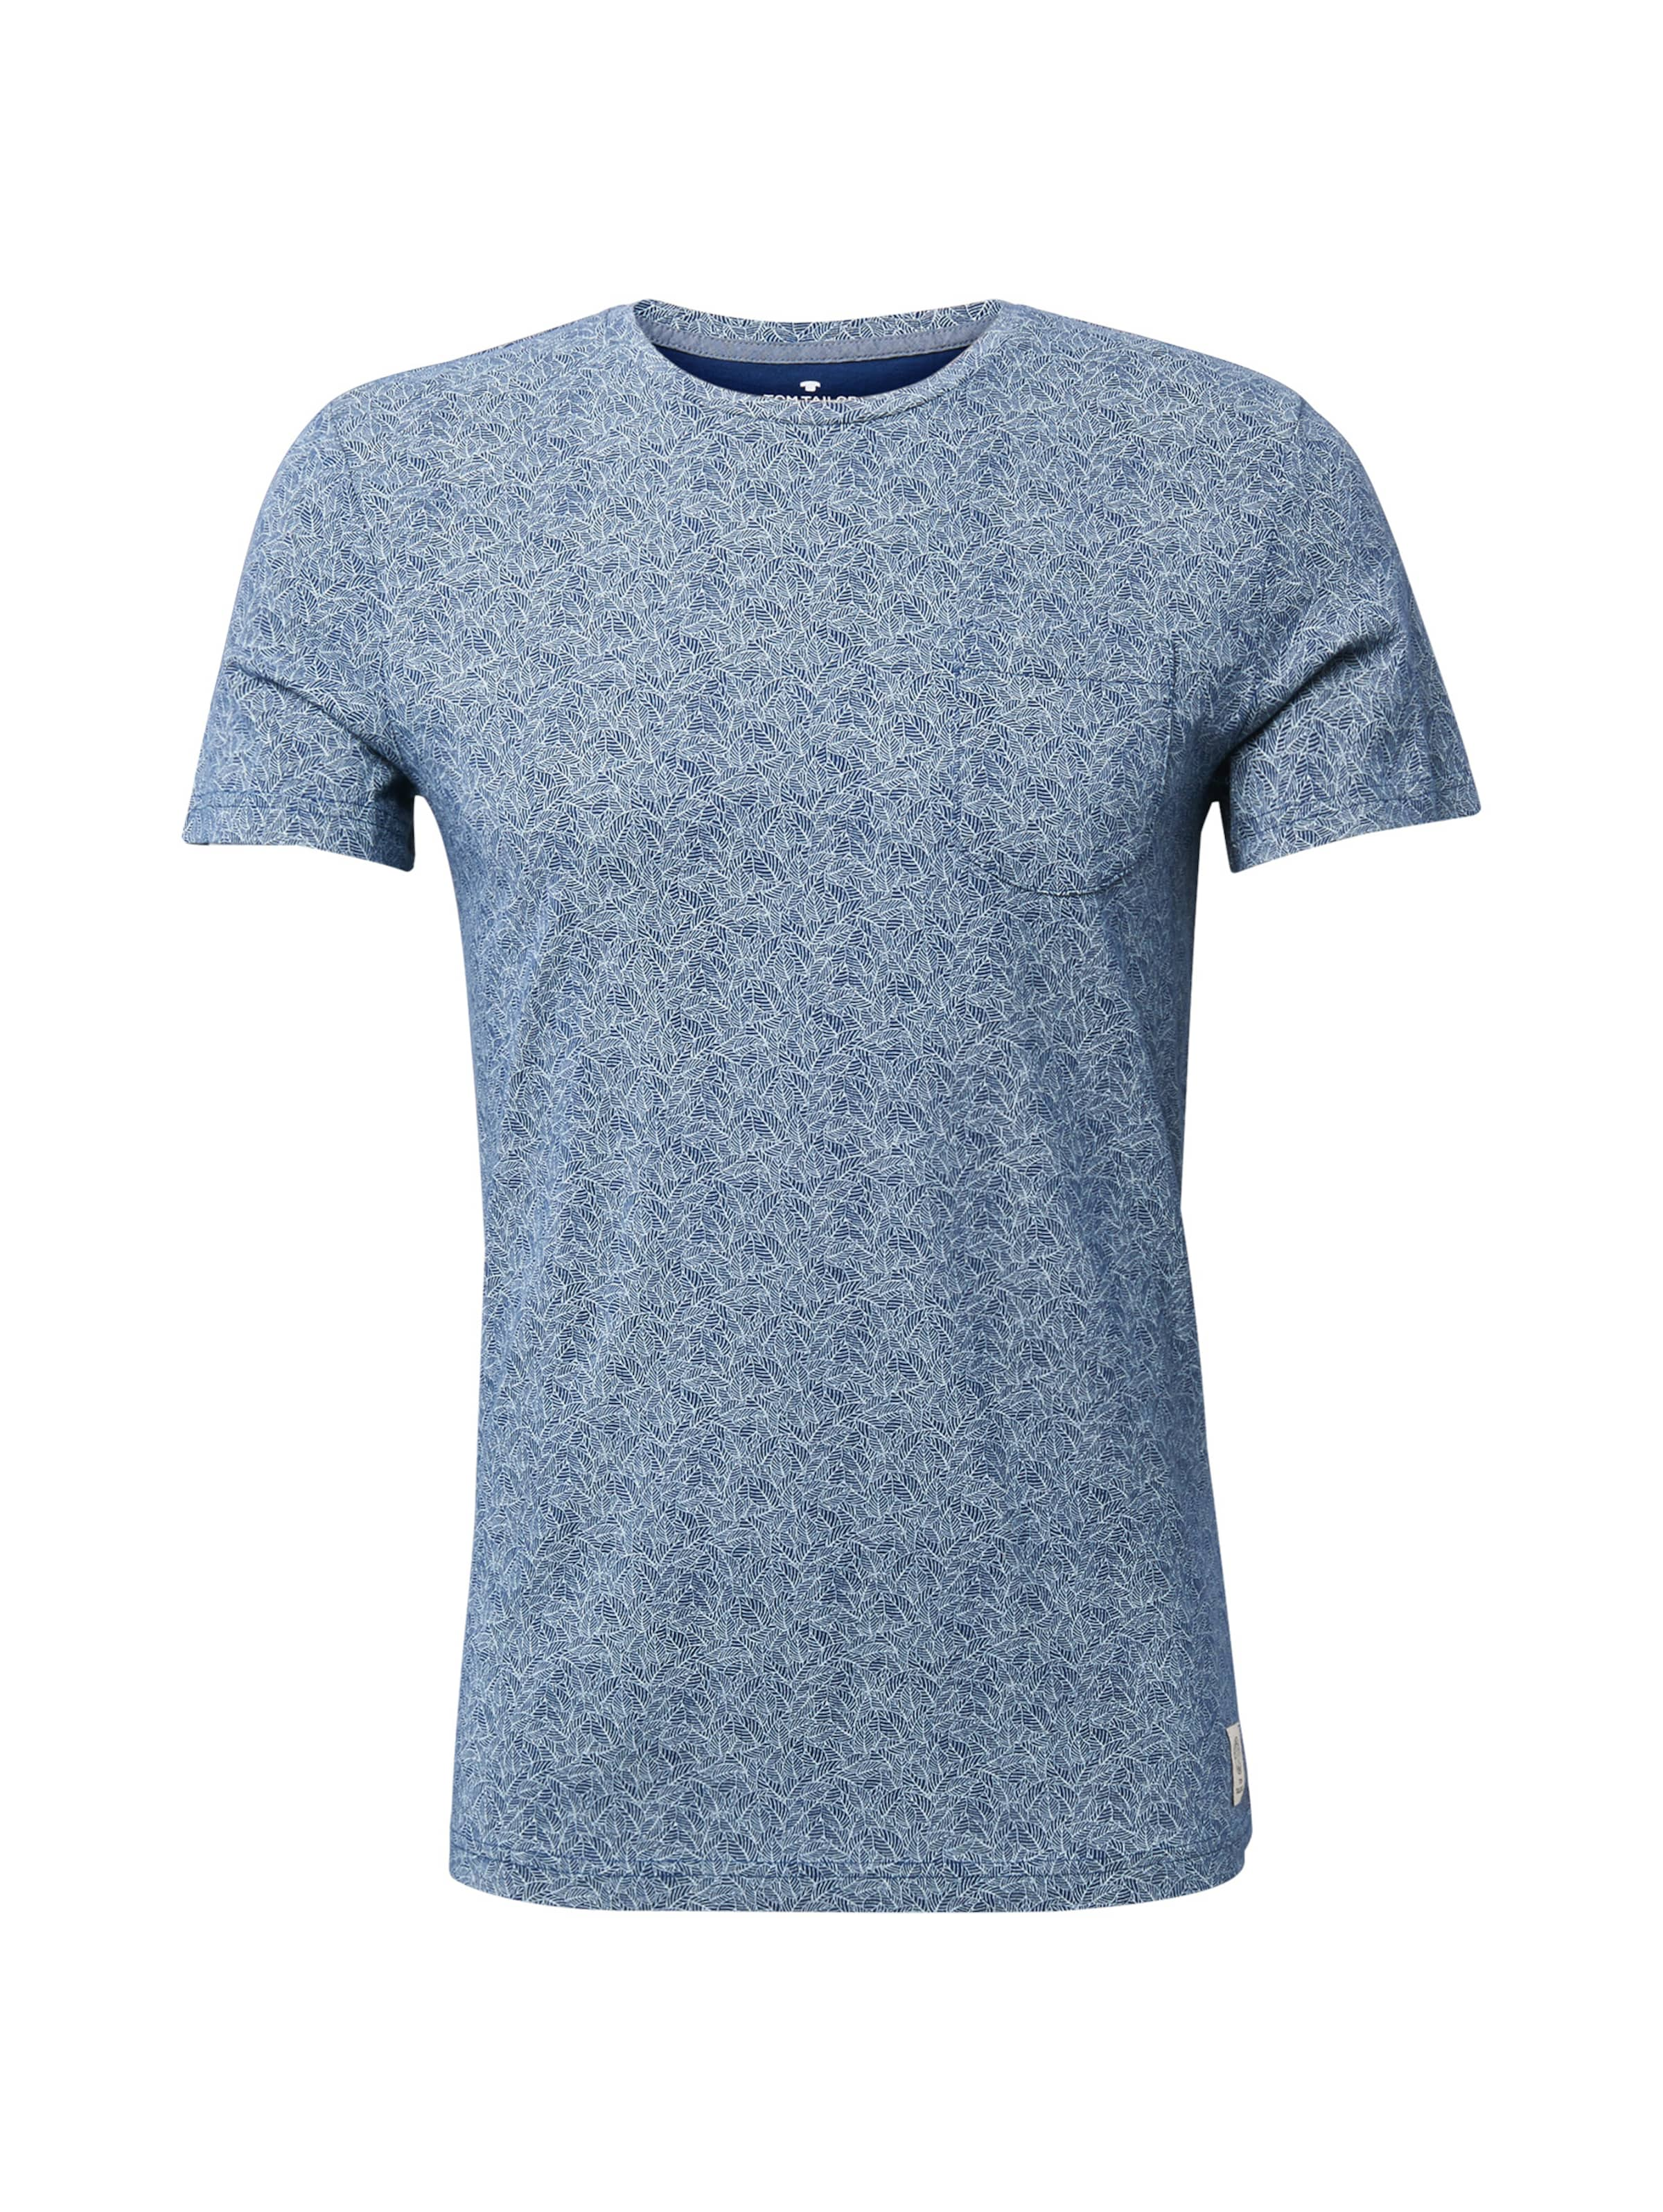 Tailor T Tom In shirt Hellblau gf6y7b